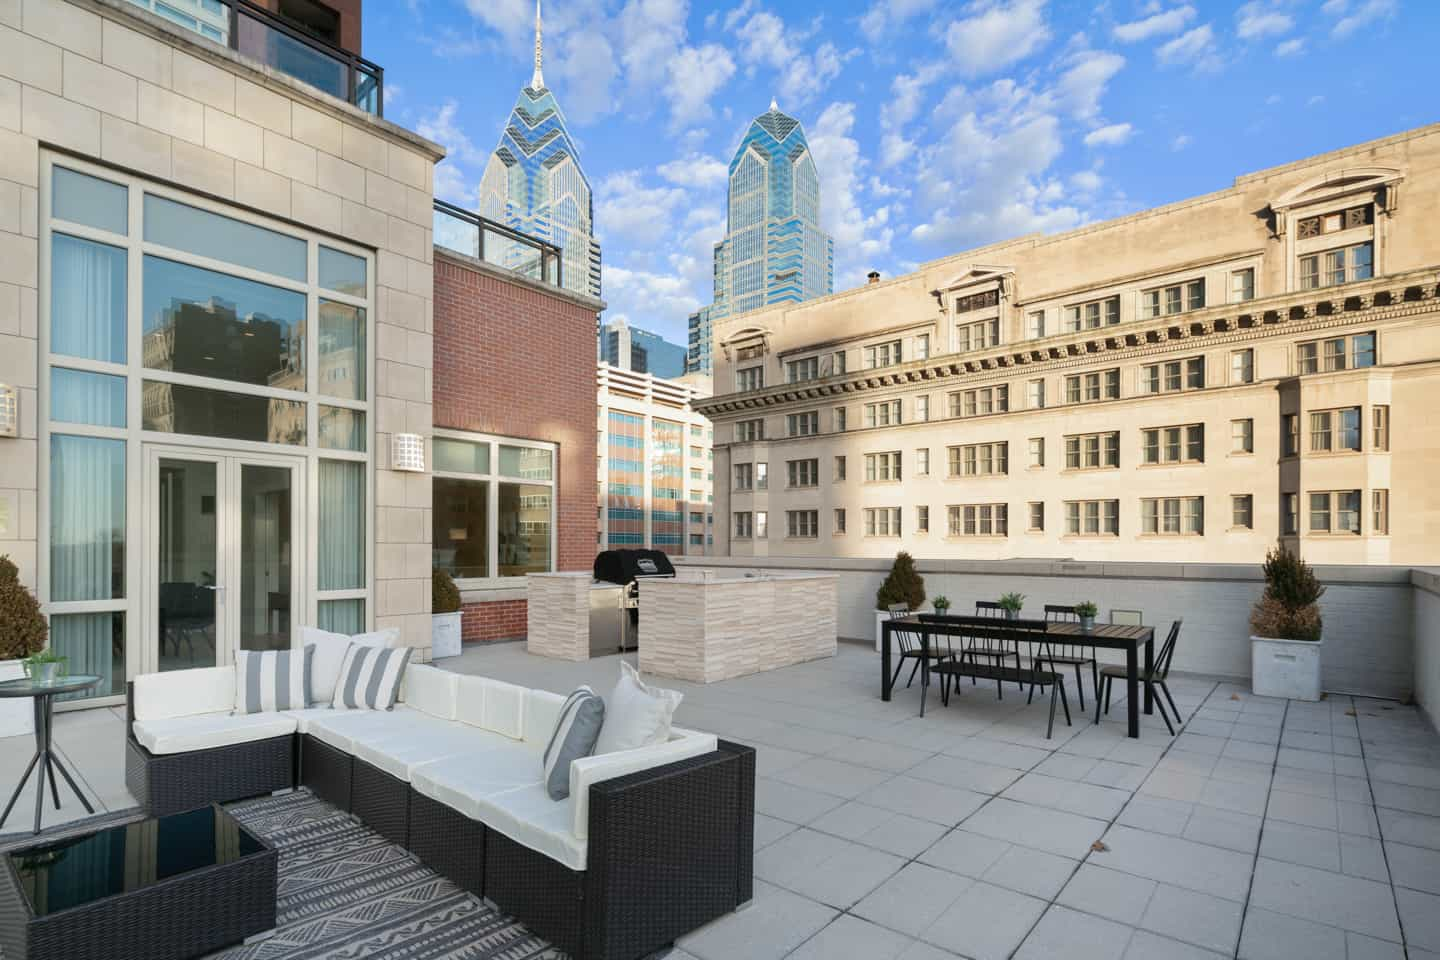 Real Estate Photograph of a Luxury Penthouse on Walnut Street in Philadelphia, PA